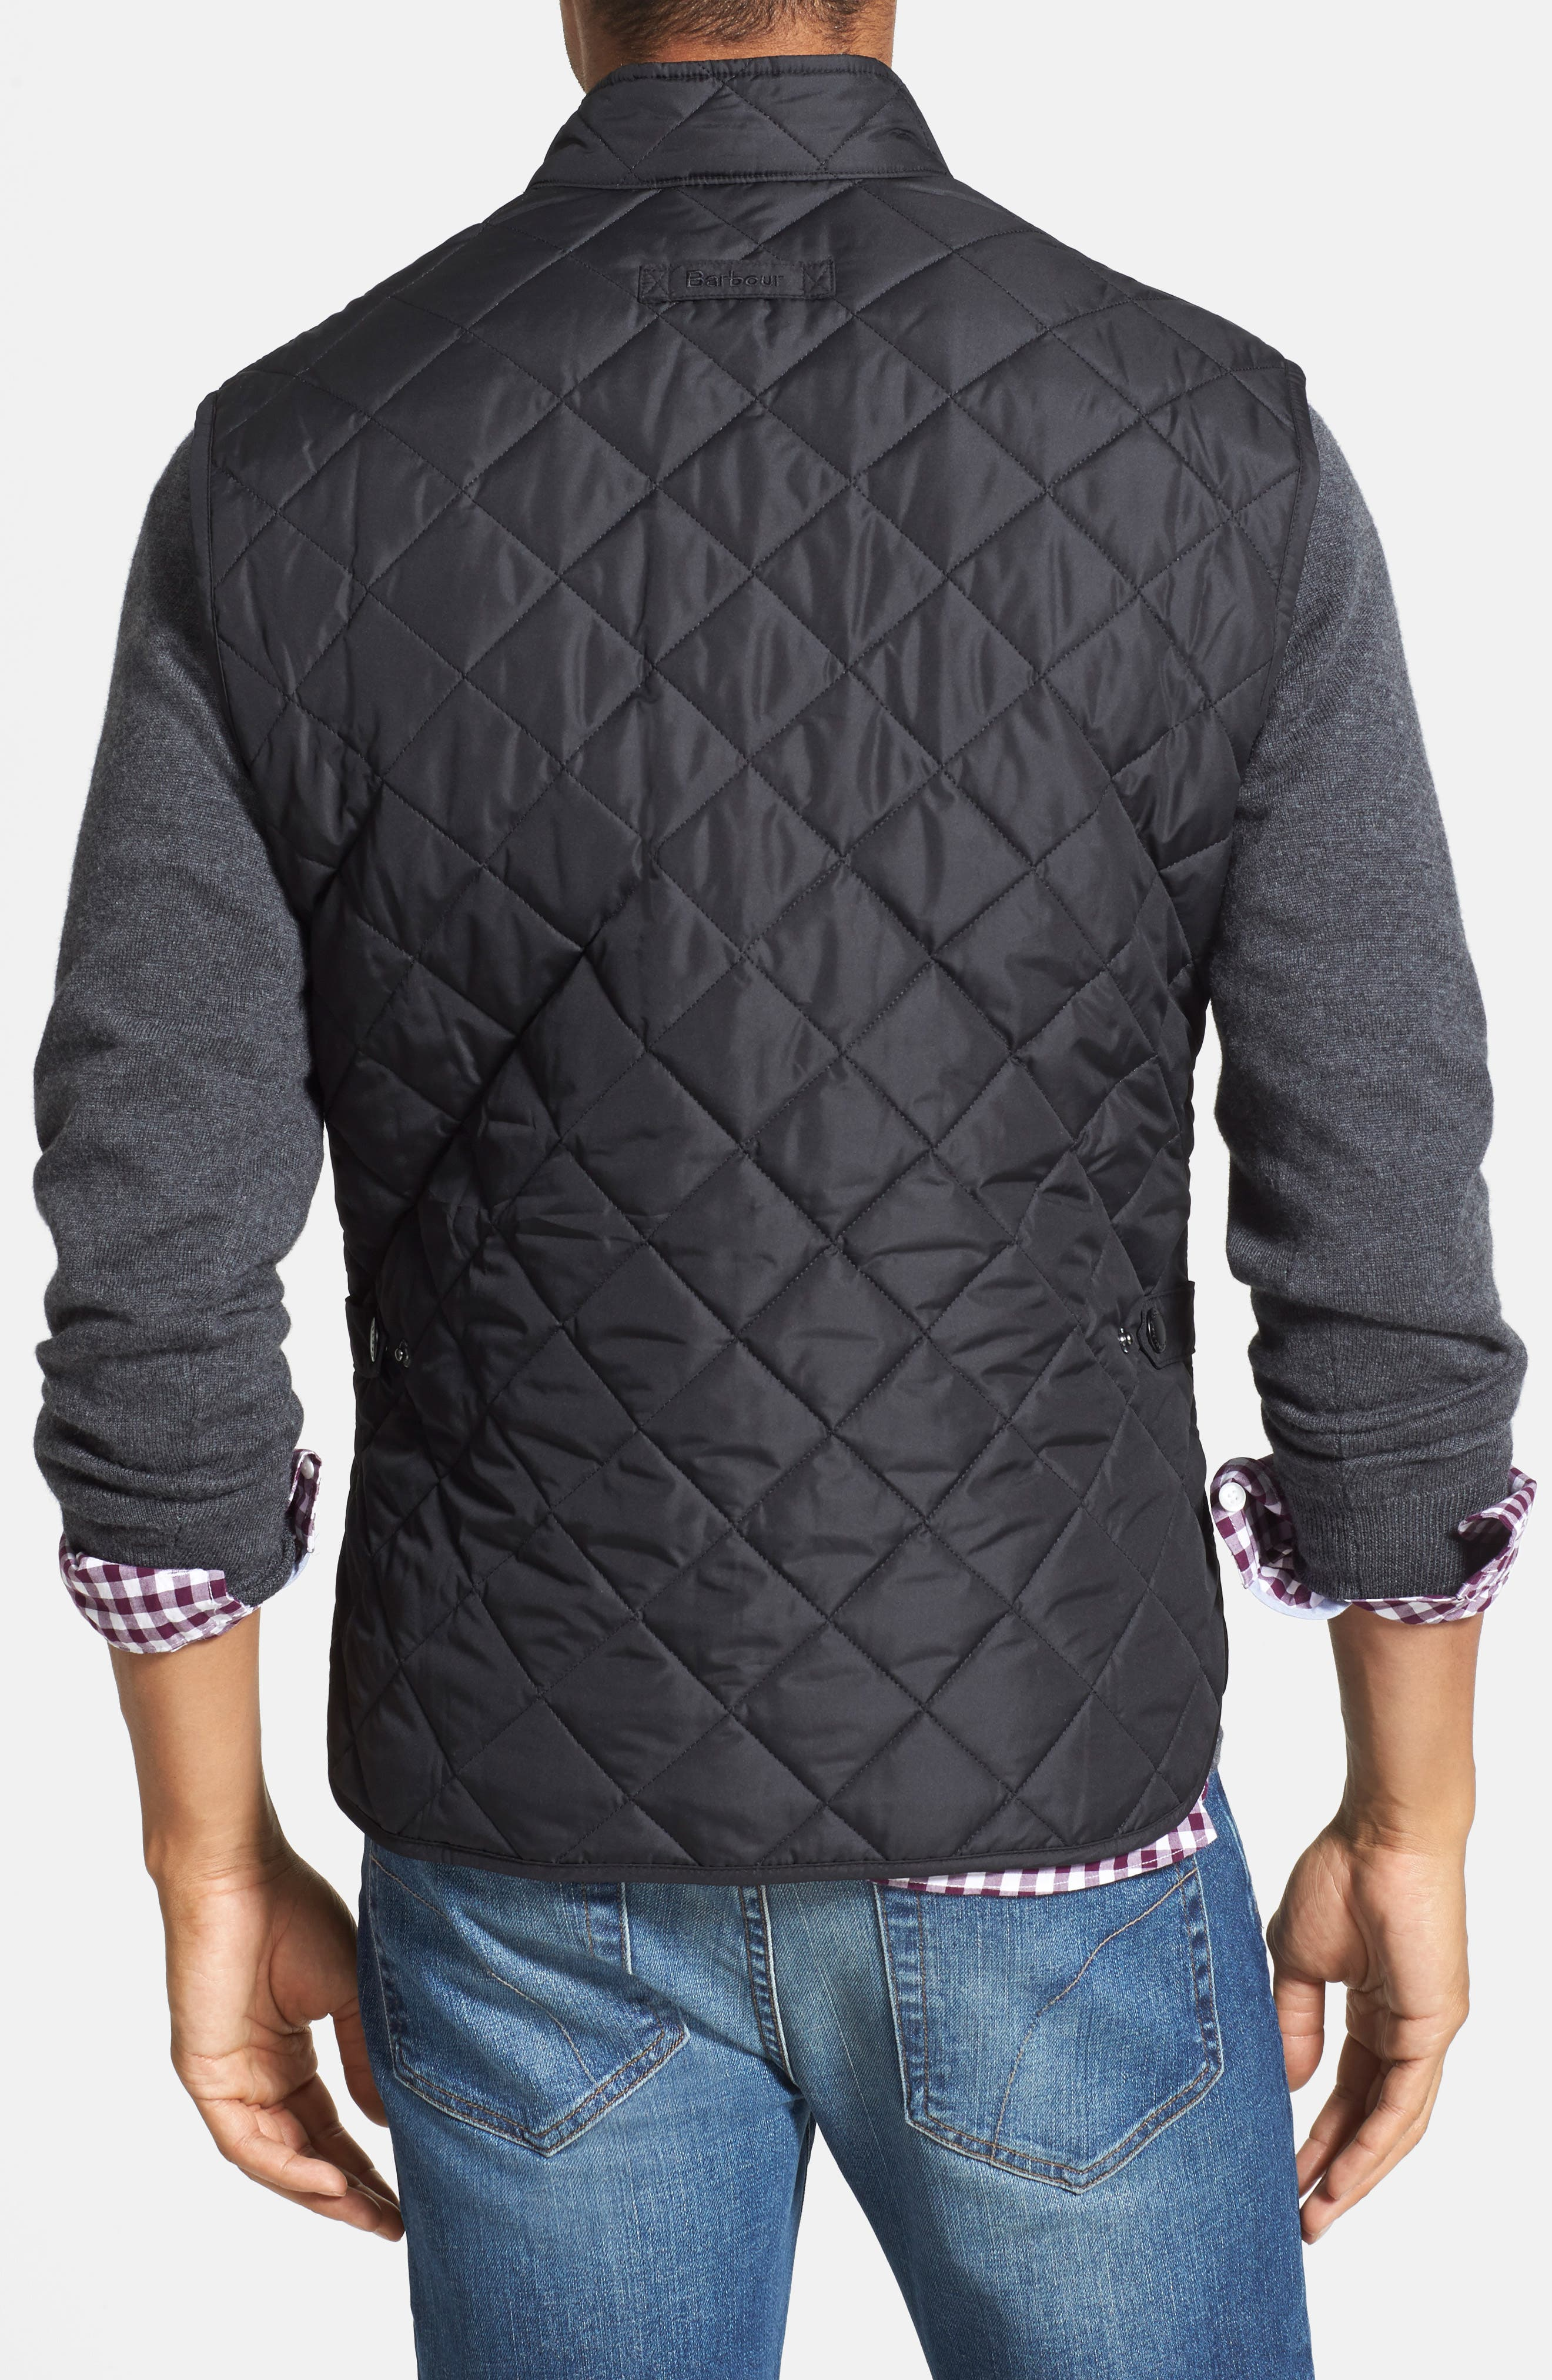 BARBOUR, Lowerdale Quilted Vest, Main thumbnail 1, color, 001